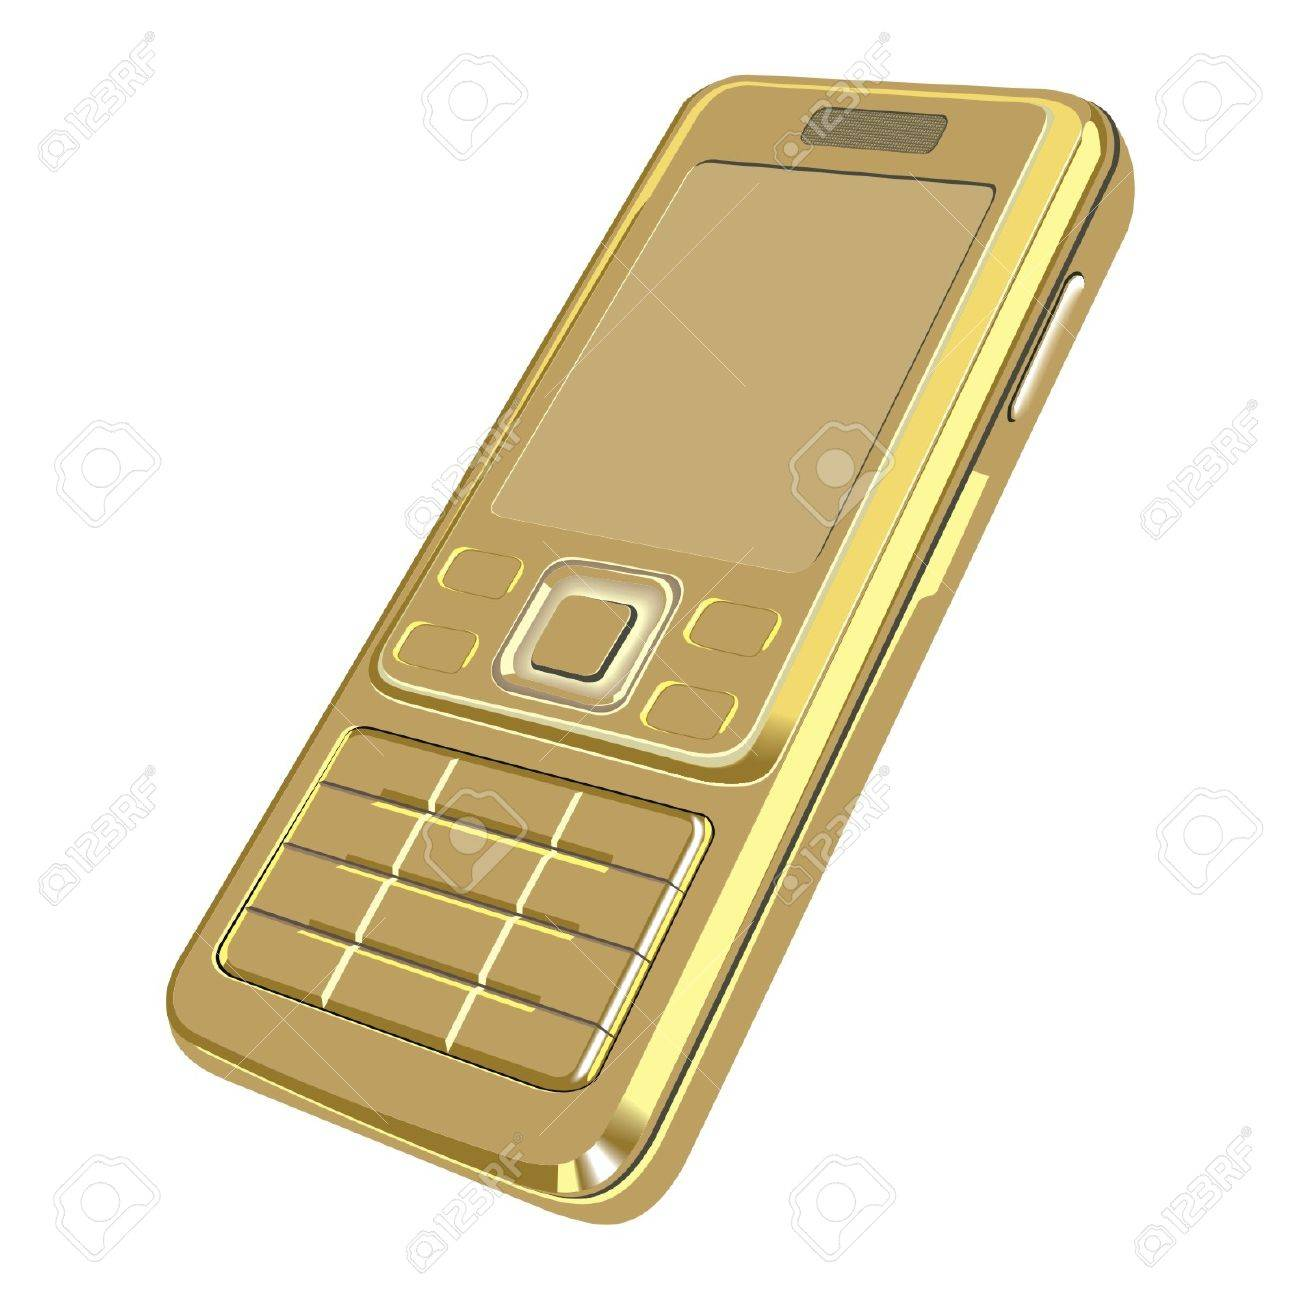 gold telephon Stock Vector - 17365188